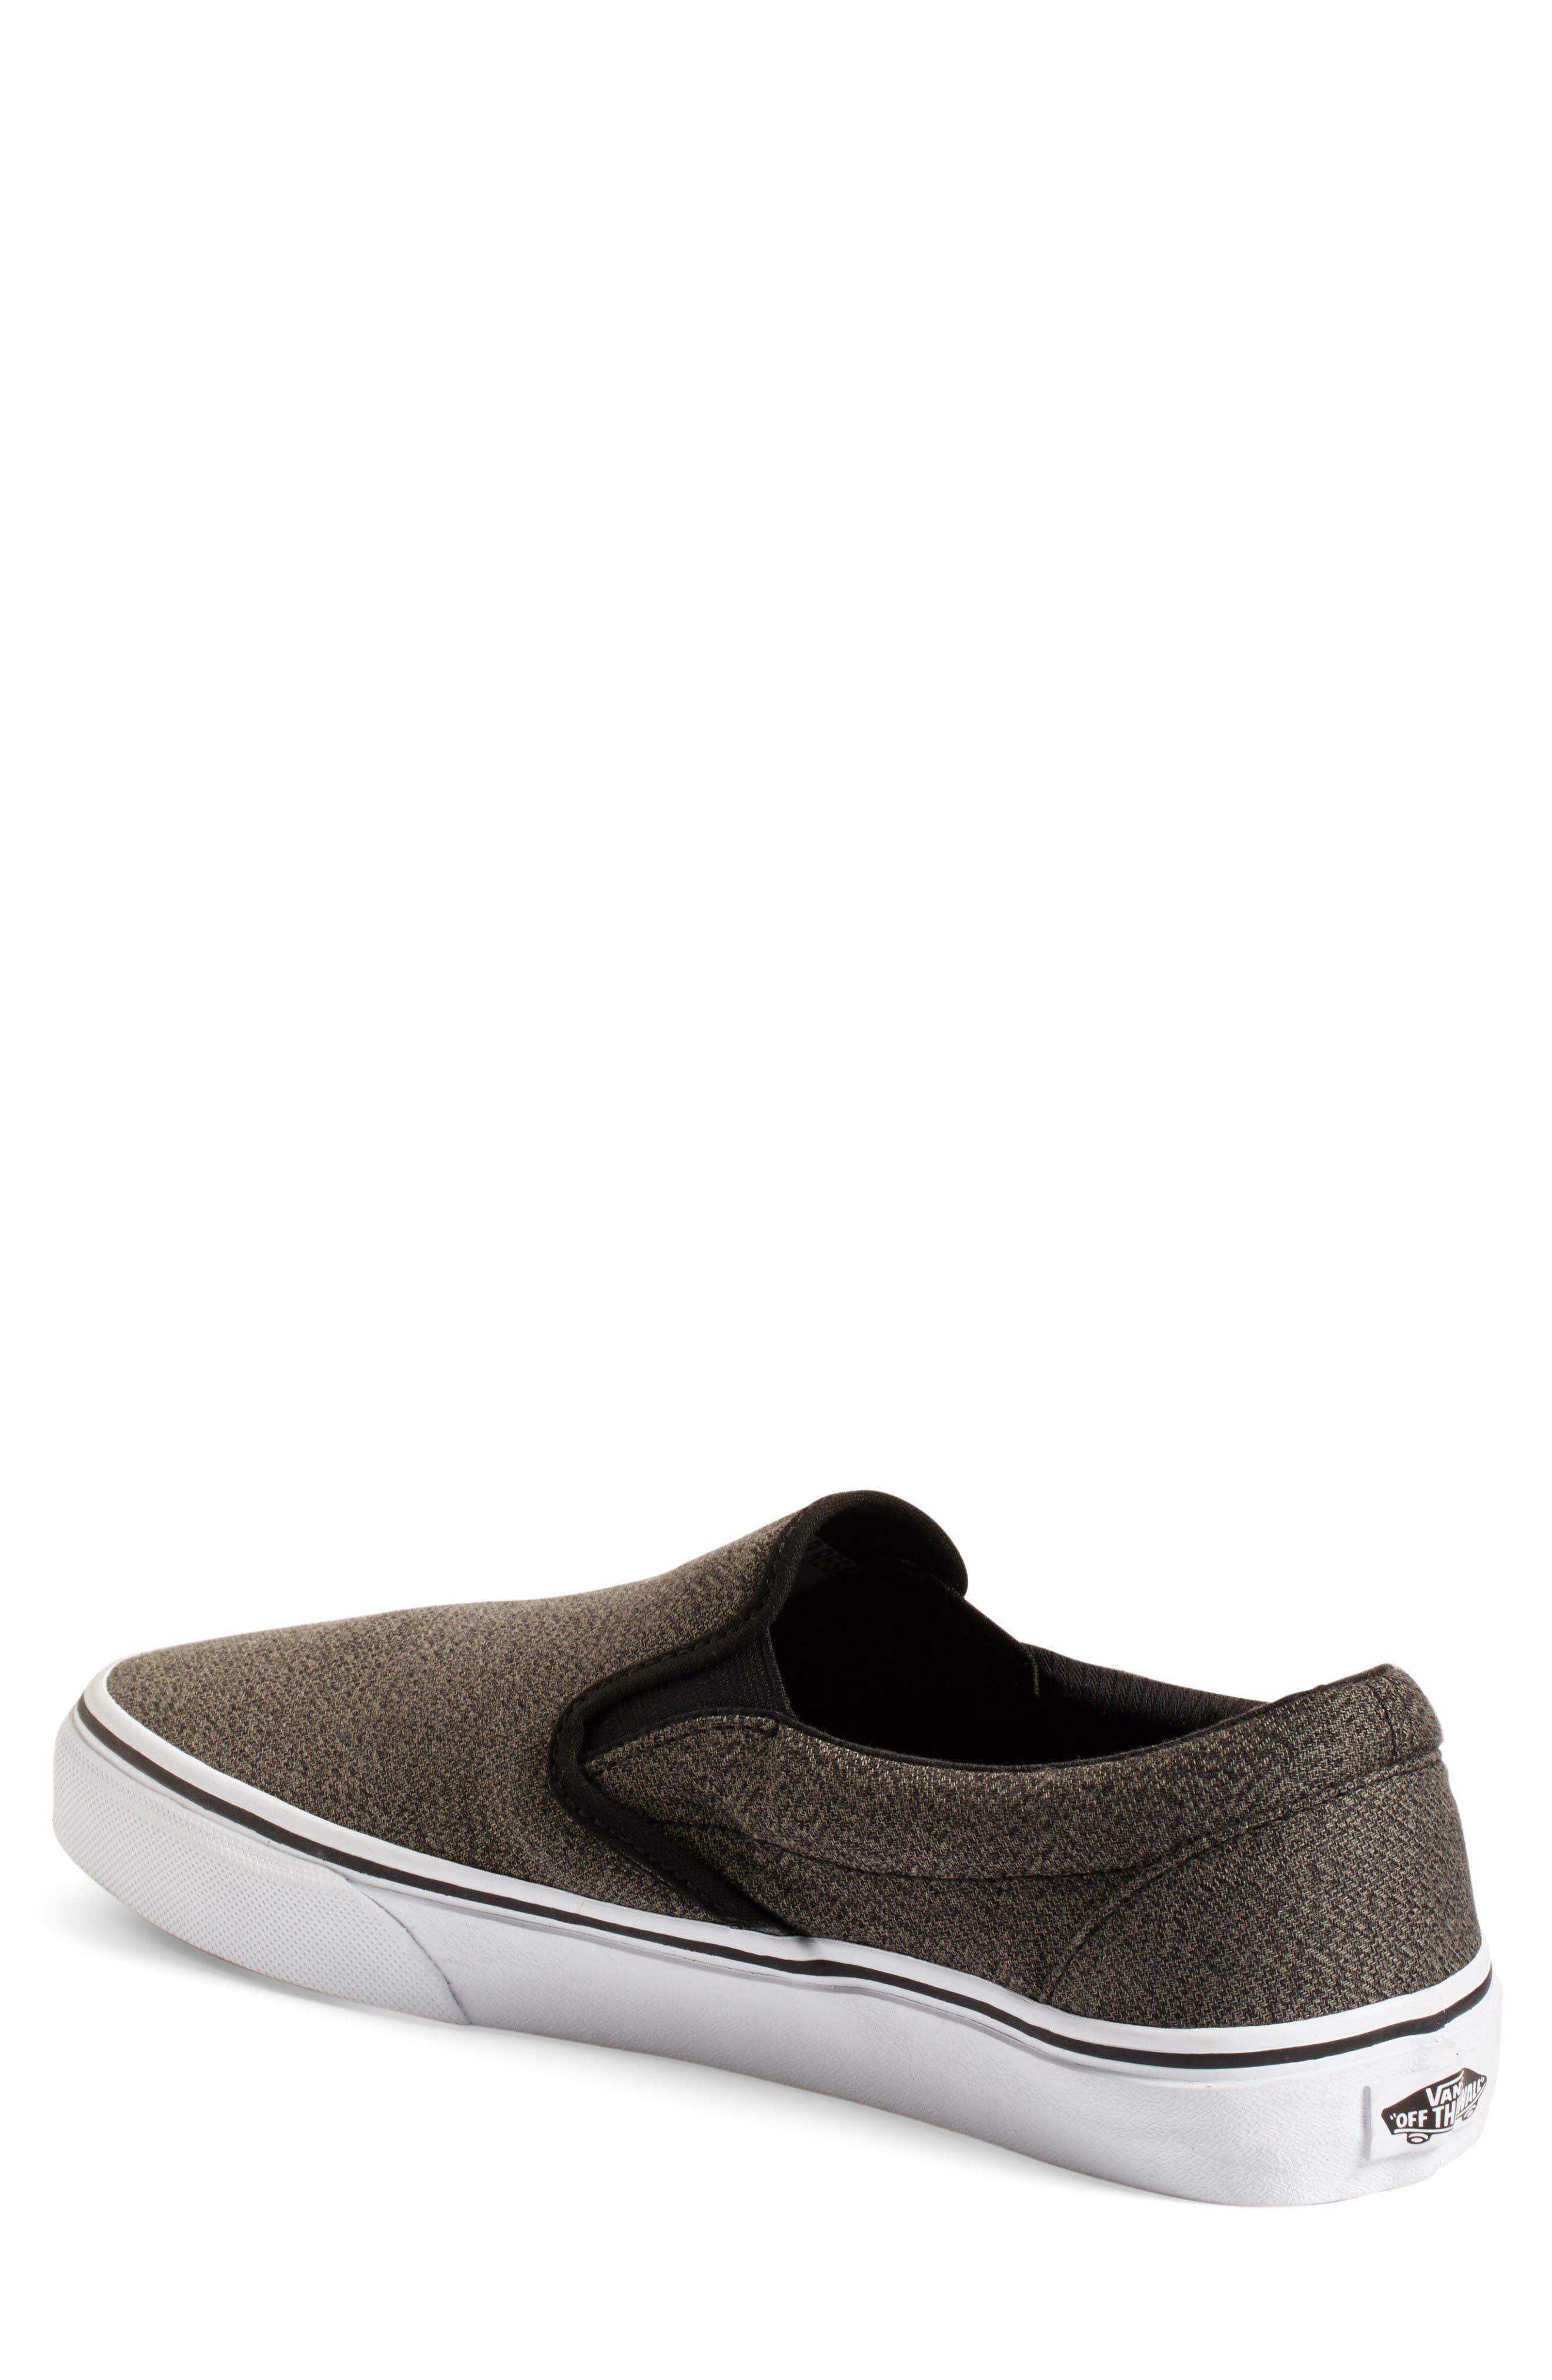 Alternate Image 2  - Vans 'Classic' Slip-On Sneaker (Men)